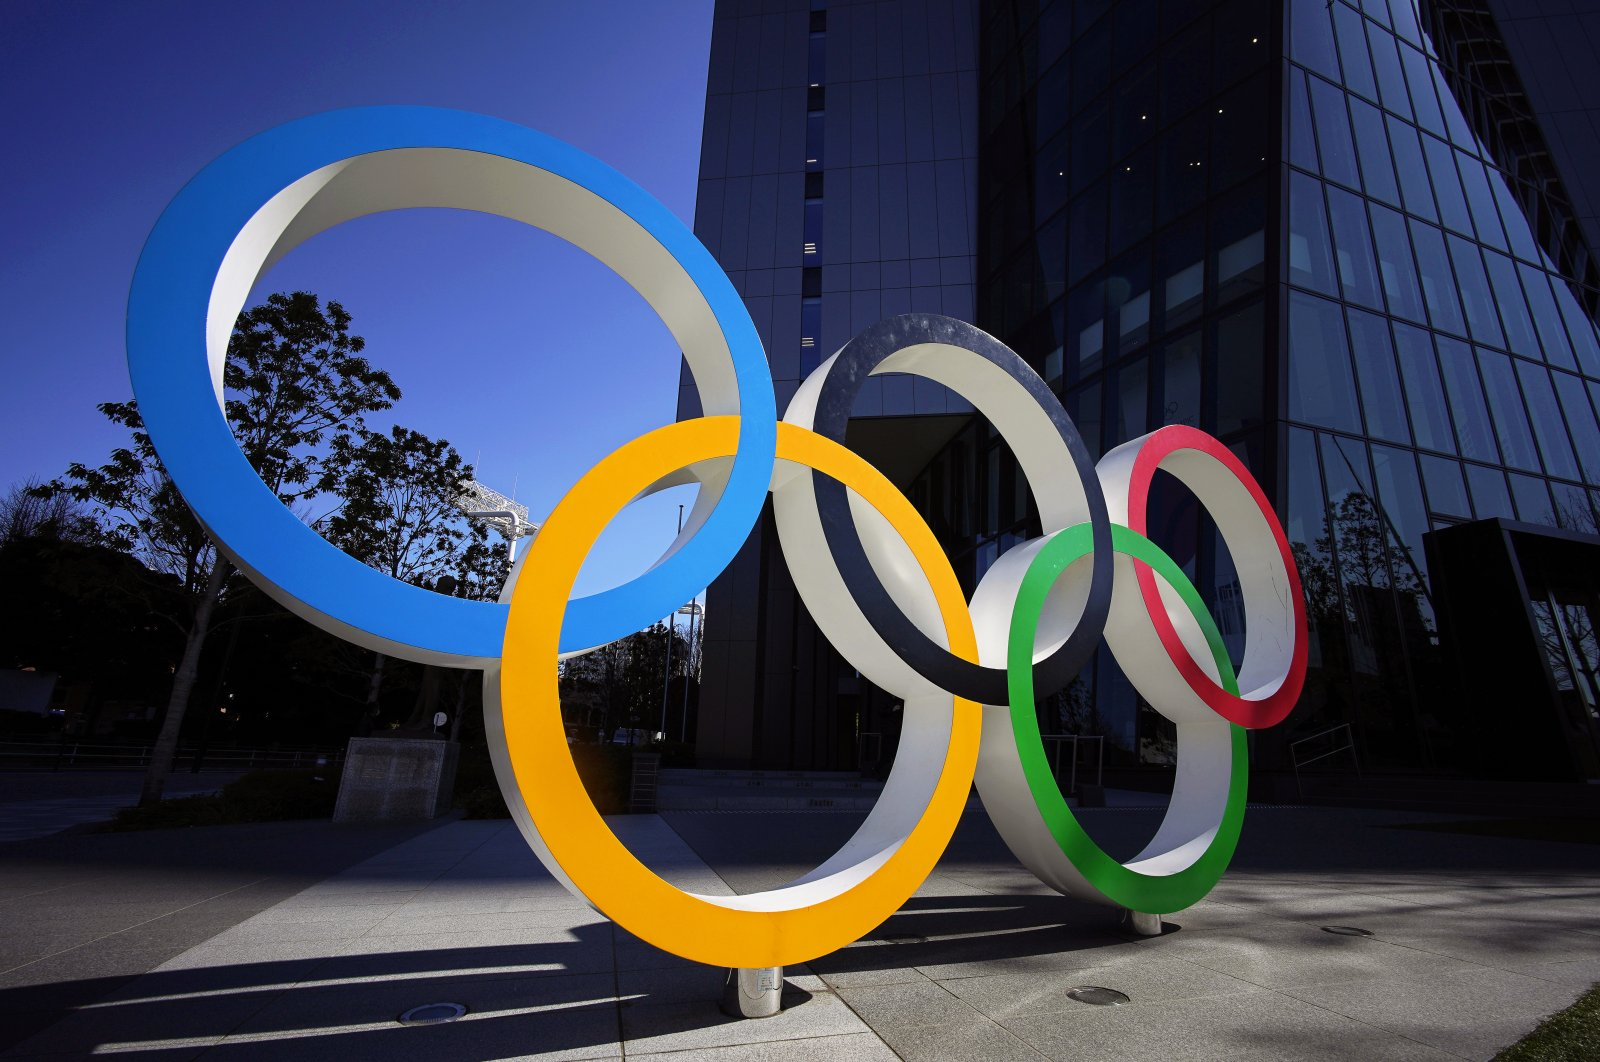 The Olympic Rings monument in front of the Japan Olympic Committee headquarters in Tokyo, Japan, Tuesday, March 24, 2020. (EPA Photo)